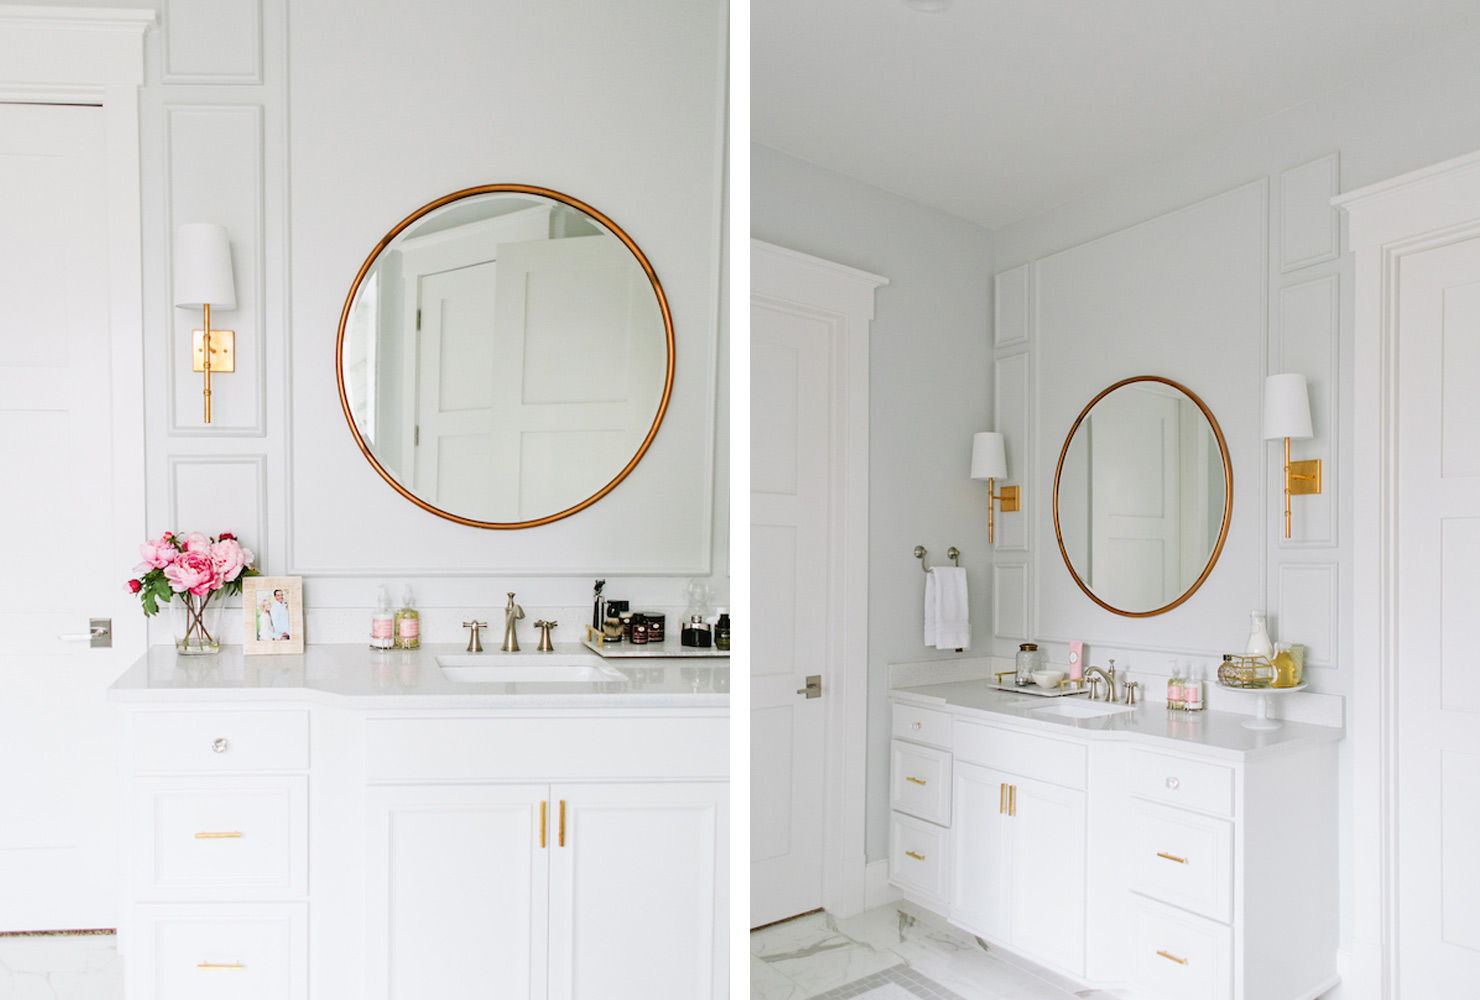 bathroom mirror golden frame